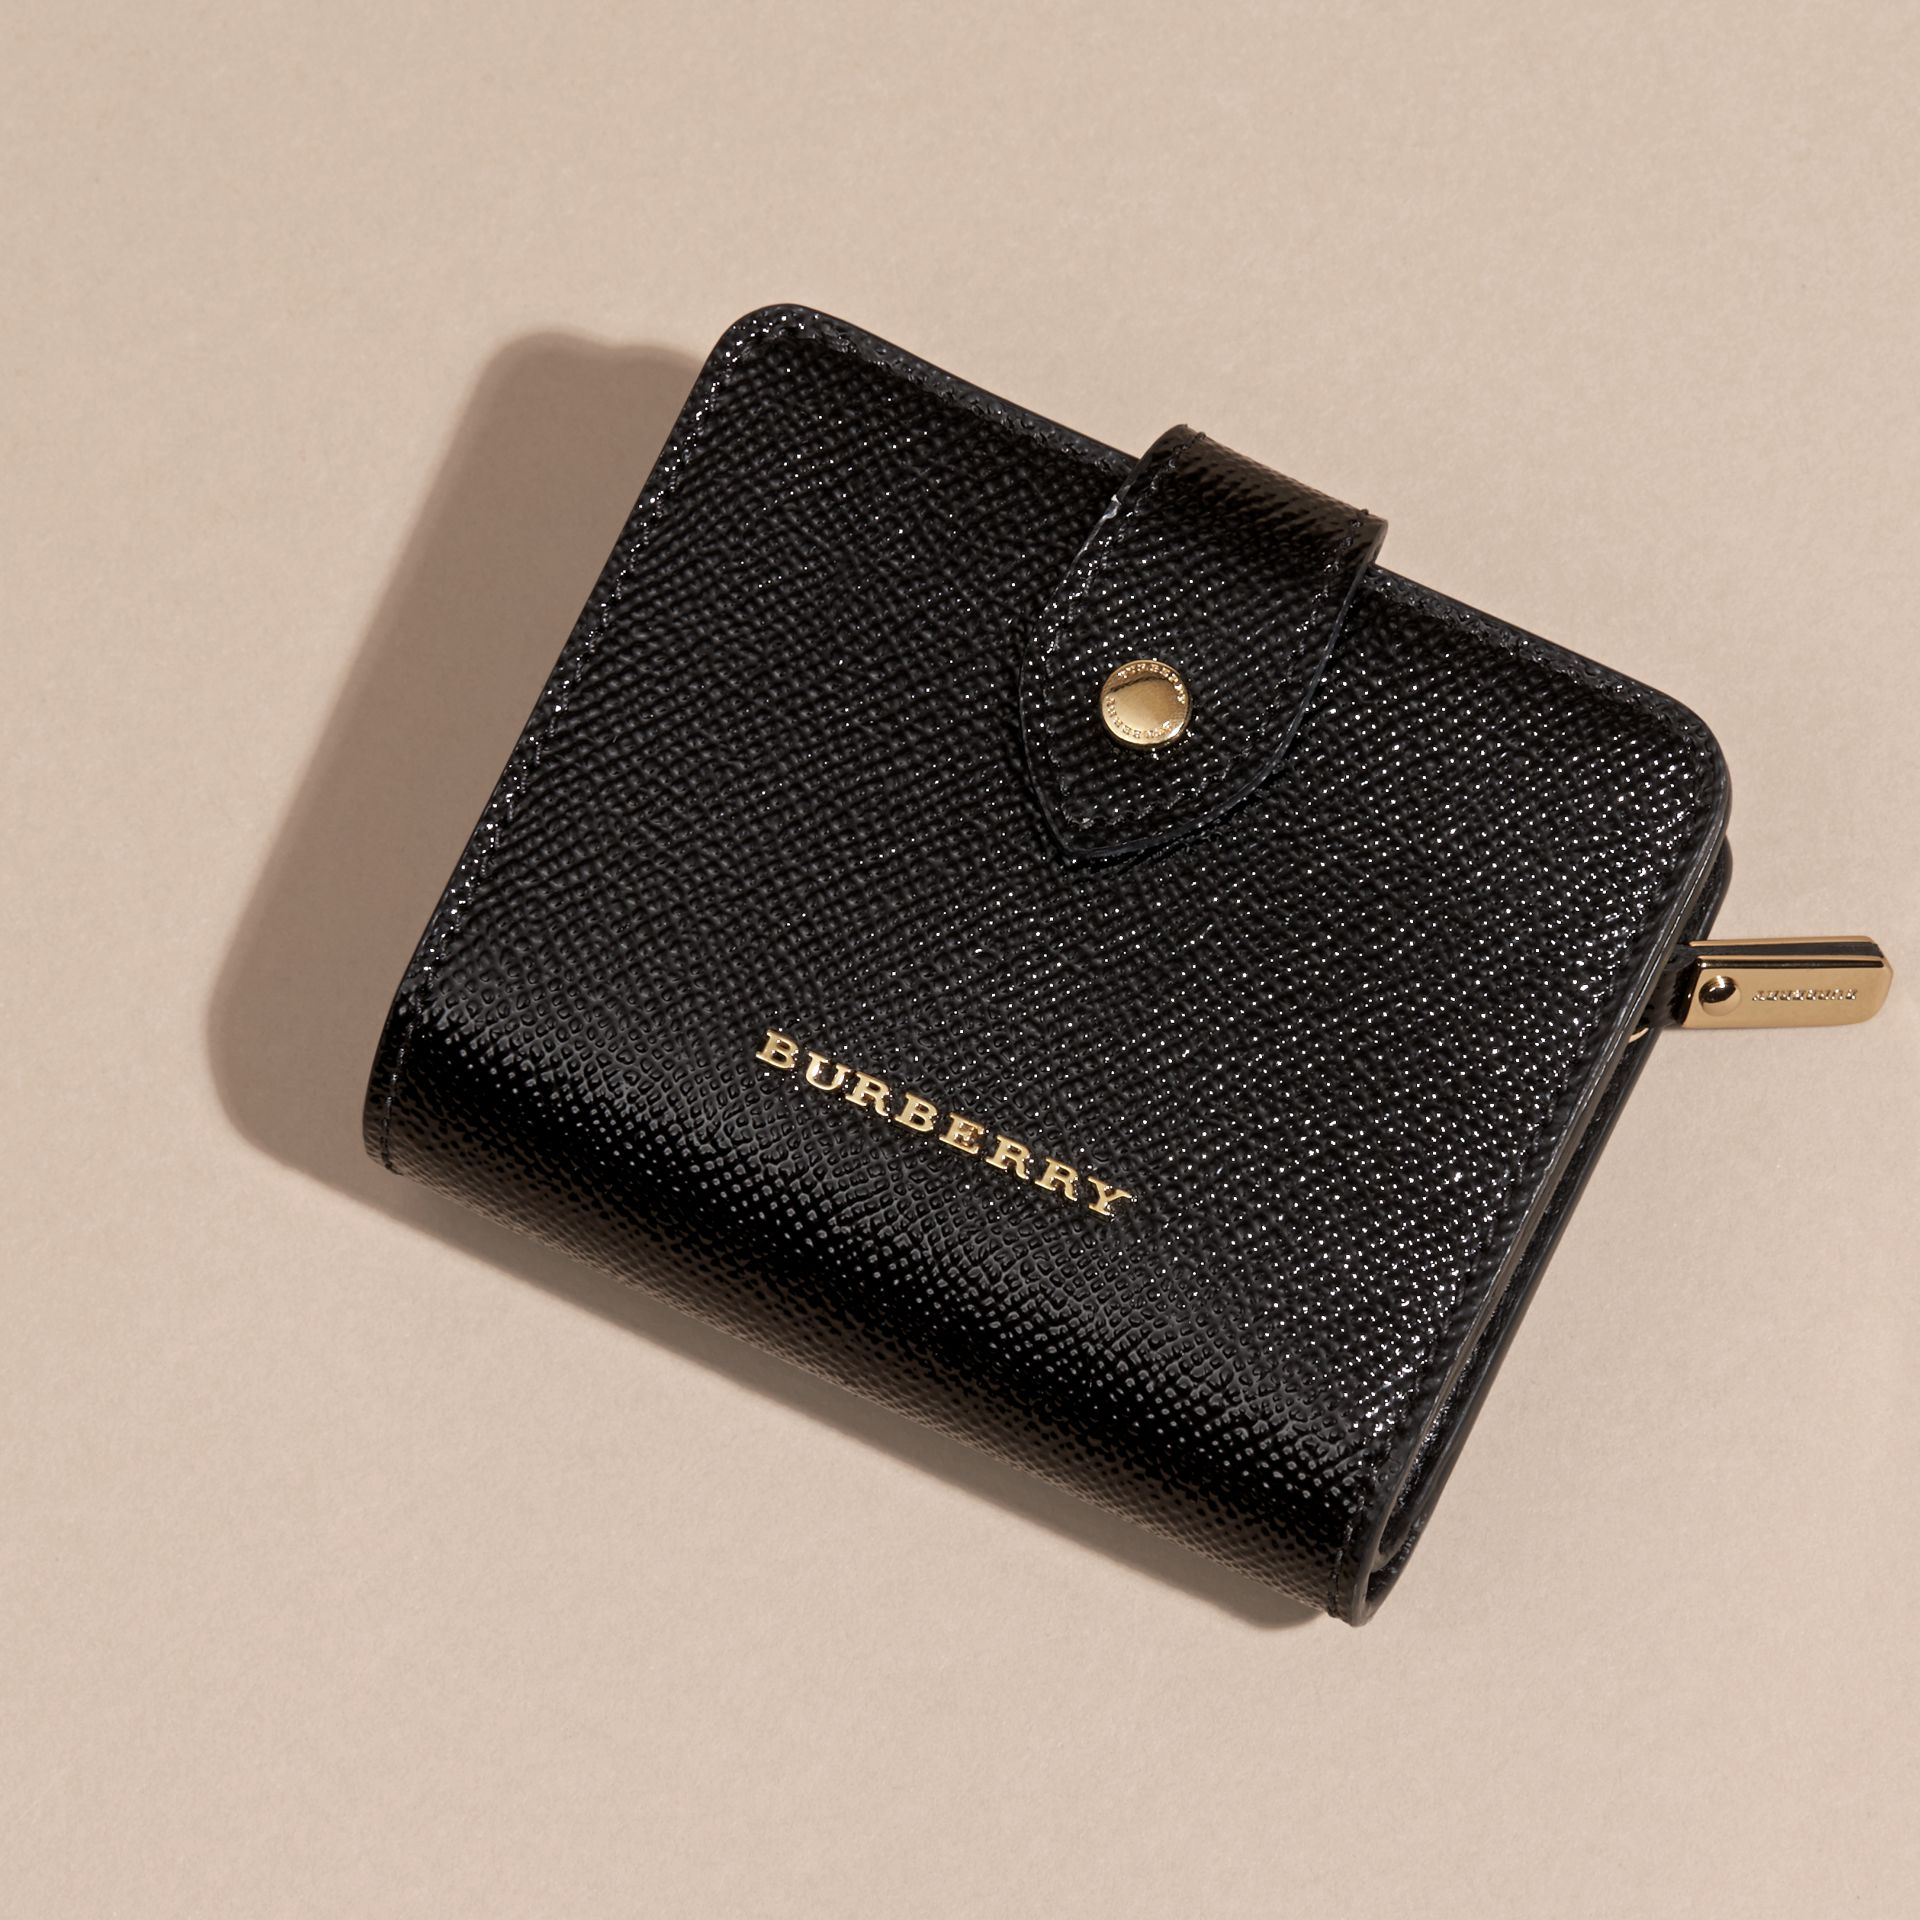 Black Patent London Leather Wallet Black - gallery image 3